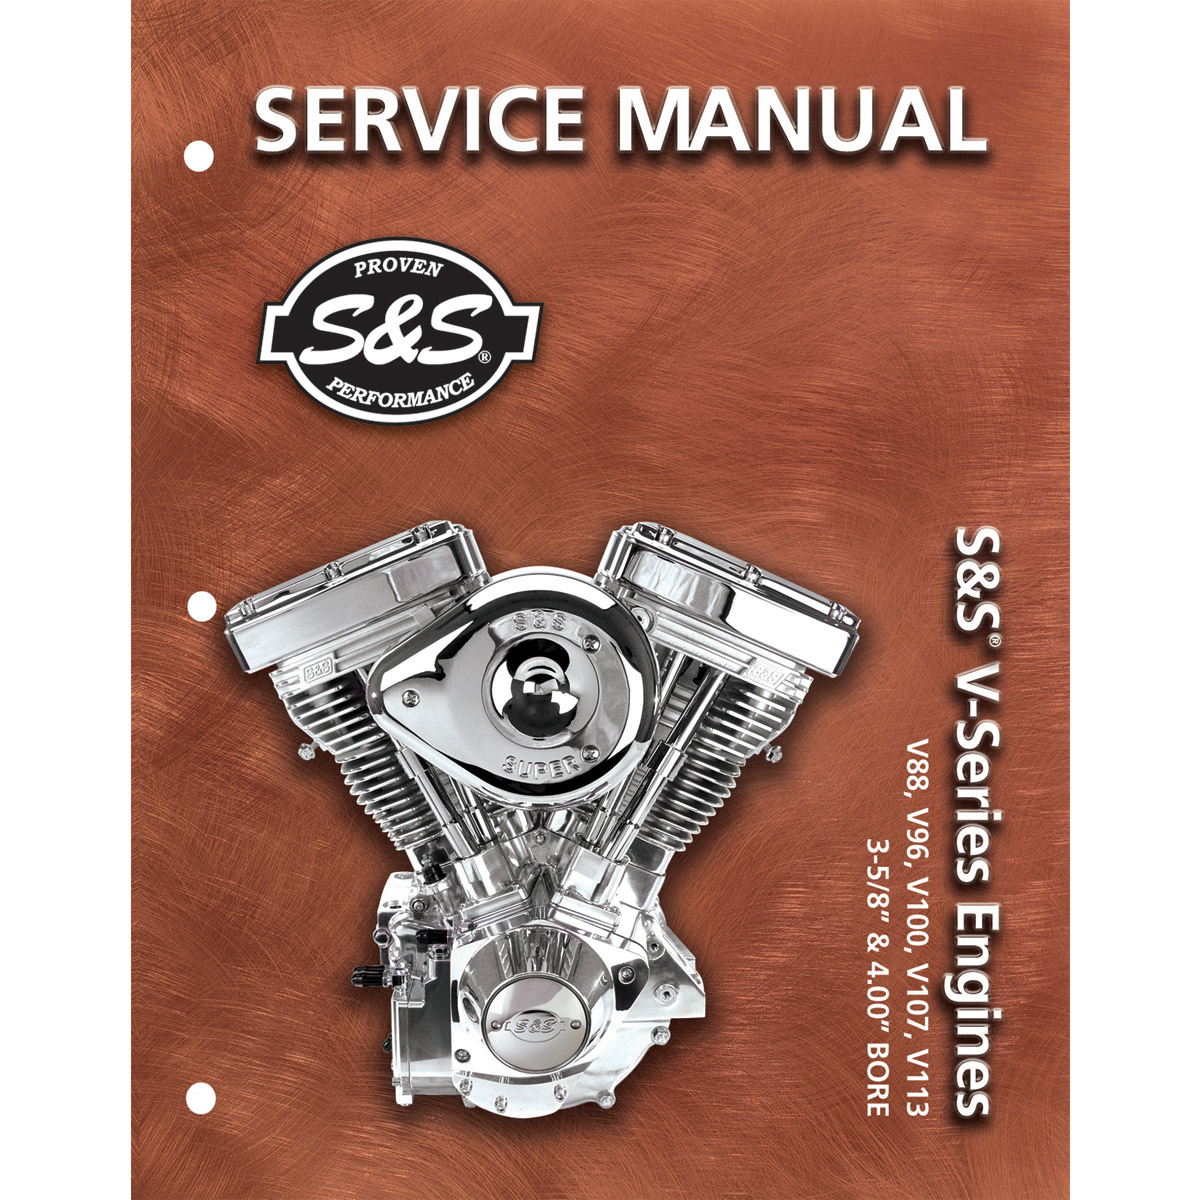 Service Manual for V88,V96,V100,V107,V113 w/ 3-5/8″ and 4″ Bores